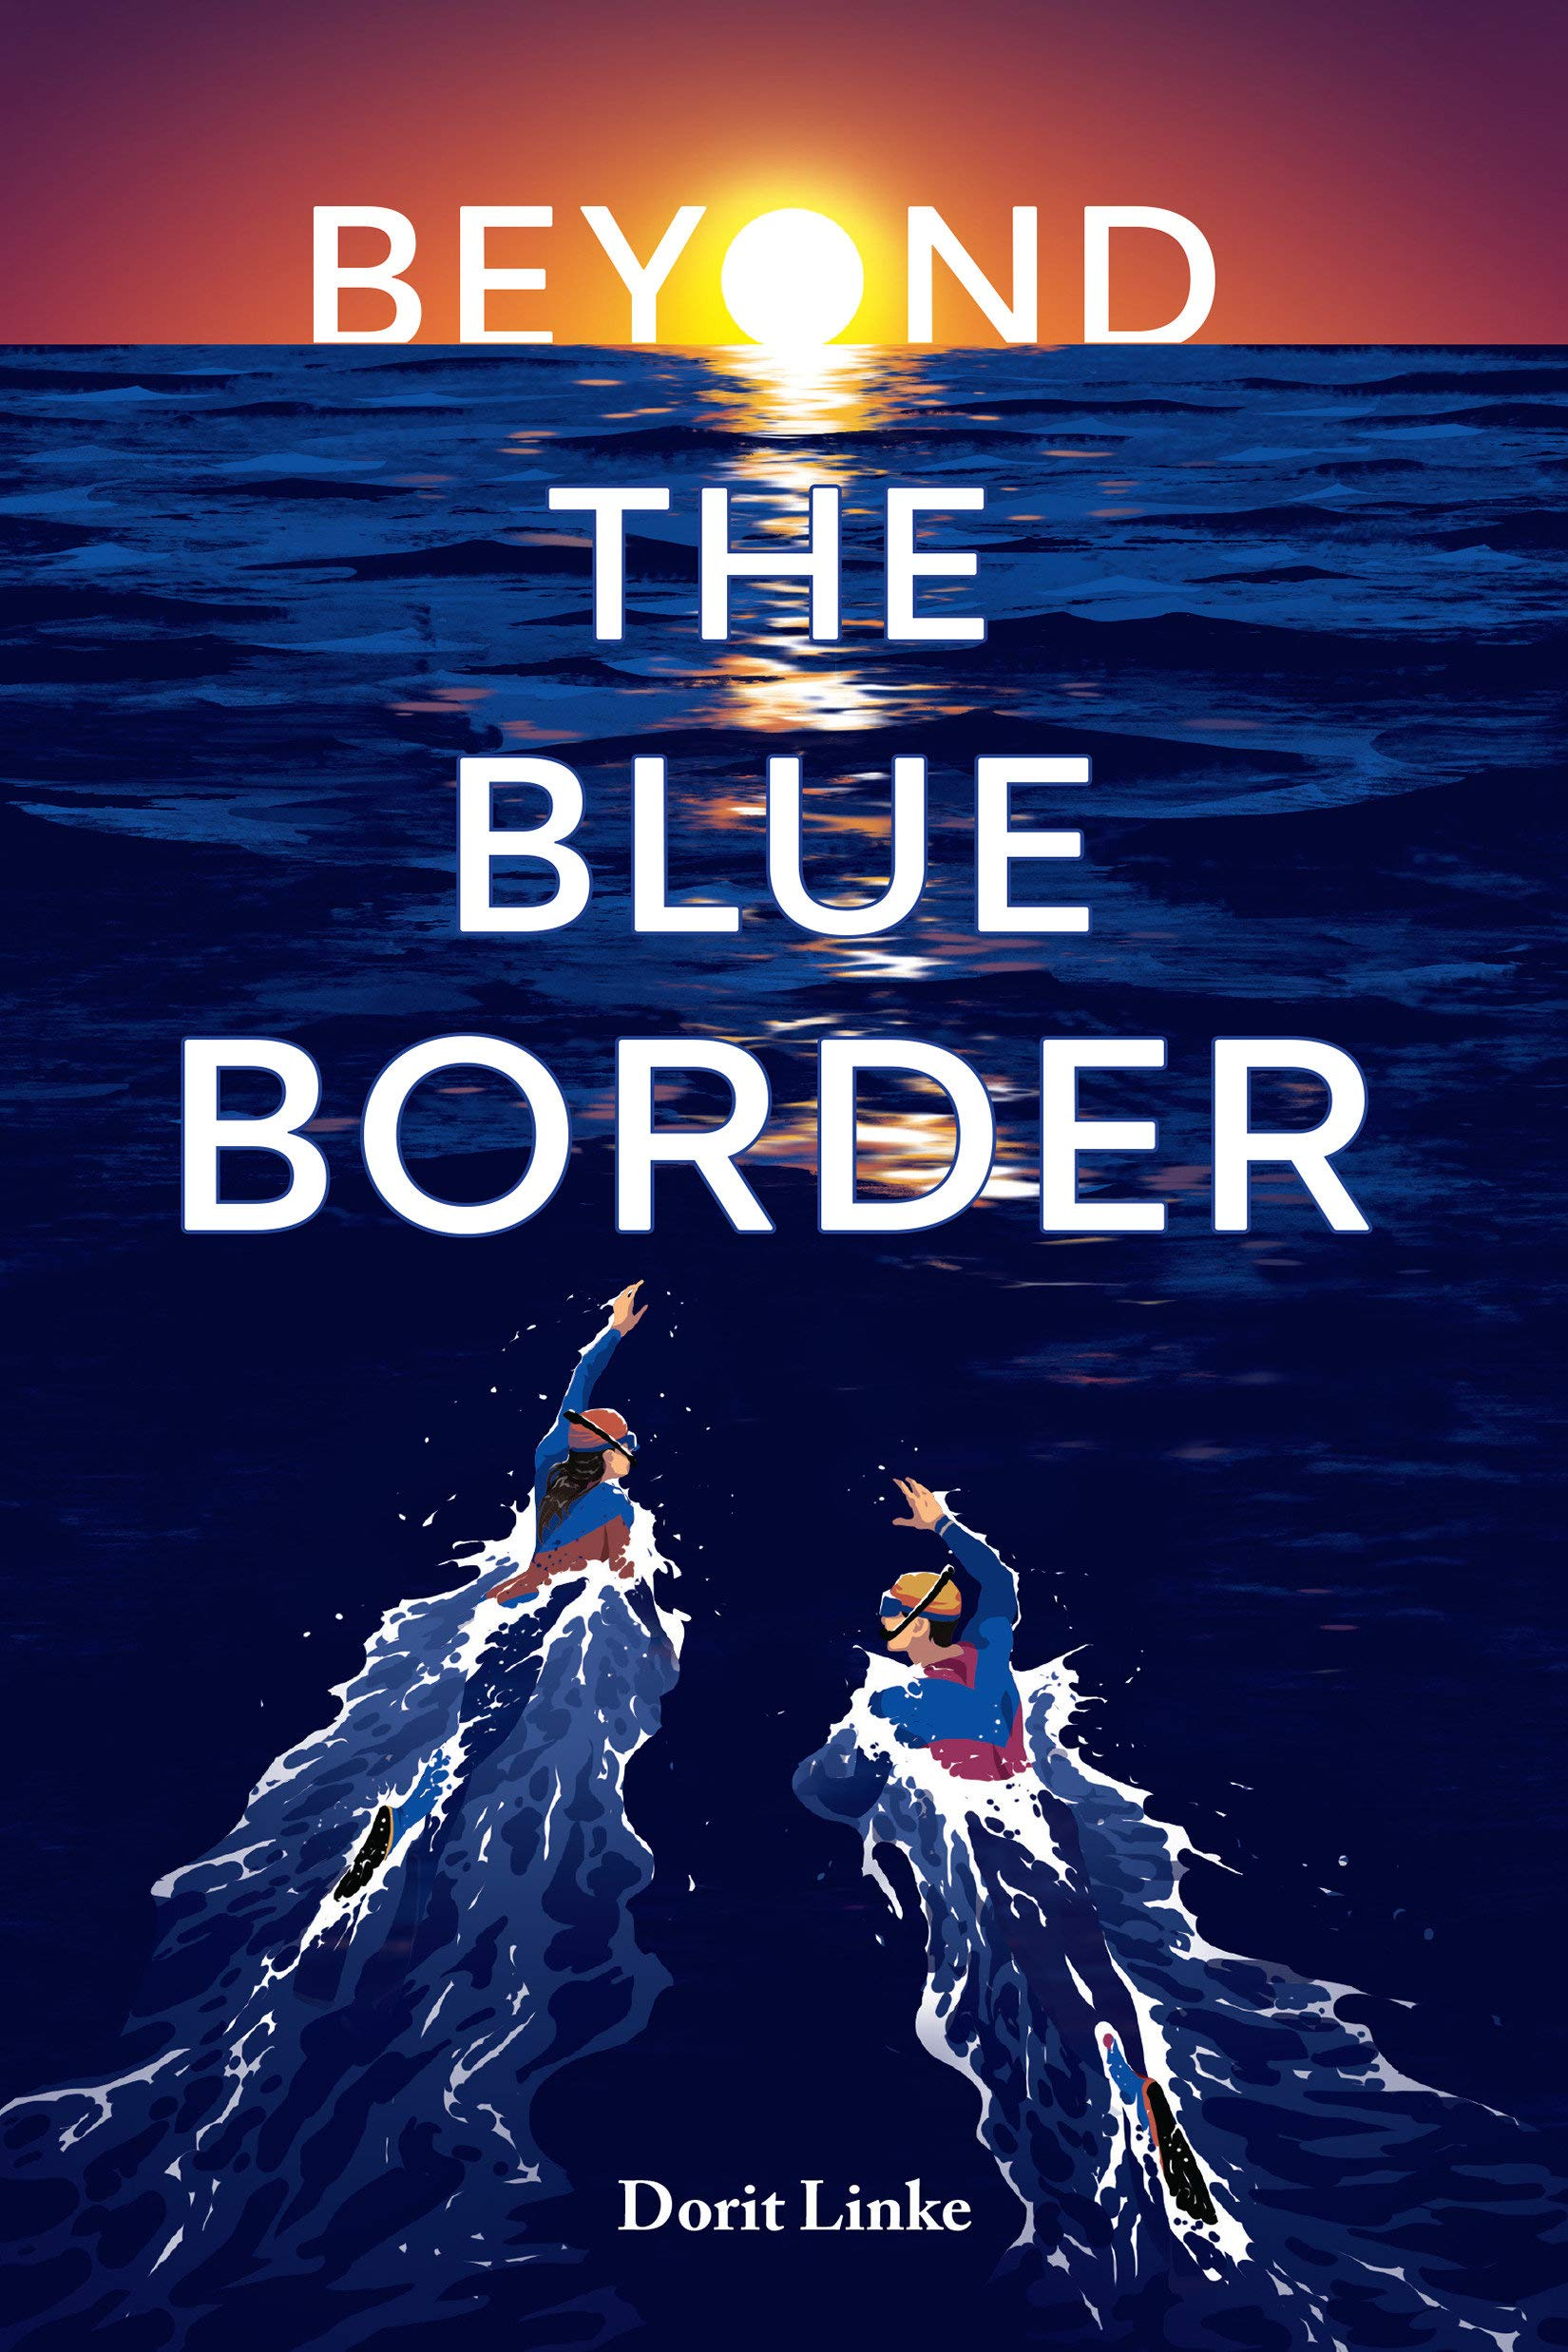 beyond the blue border book cover